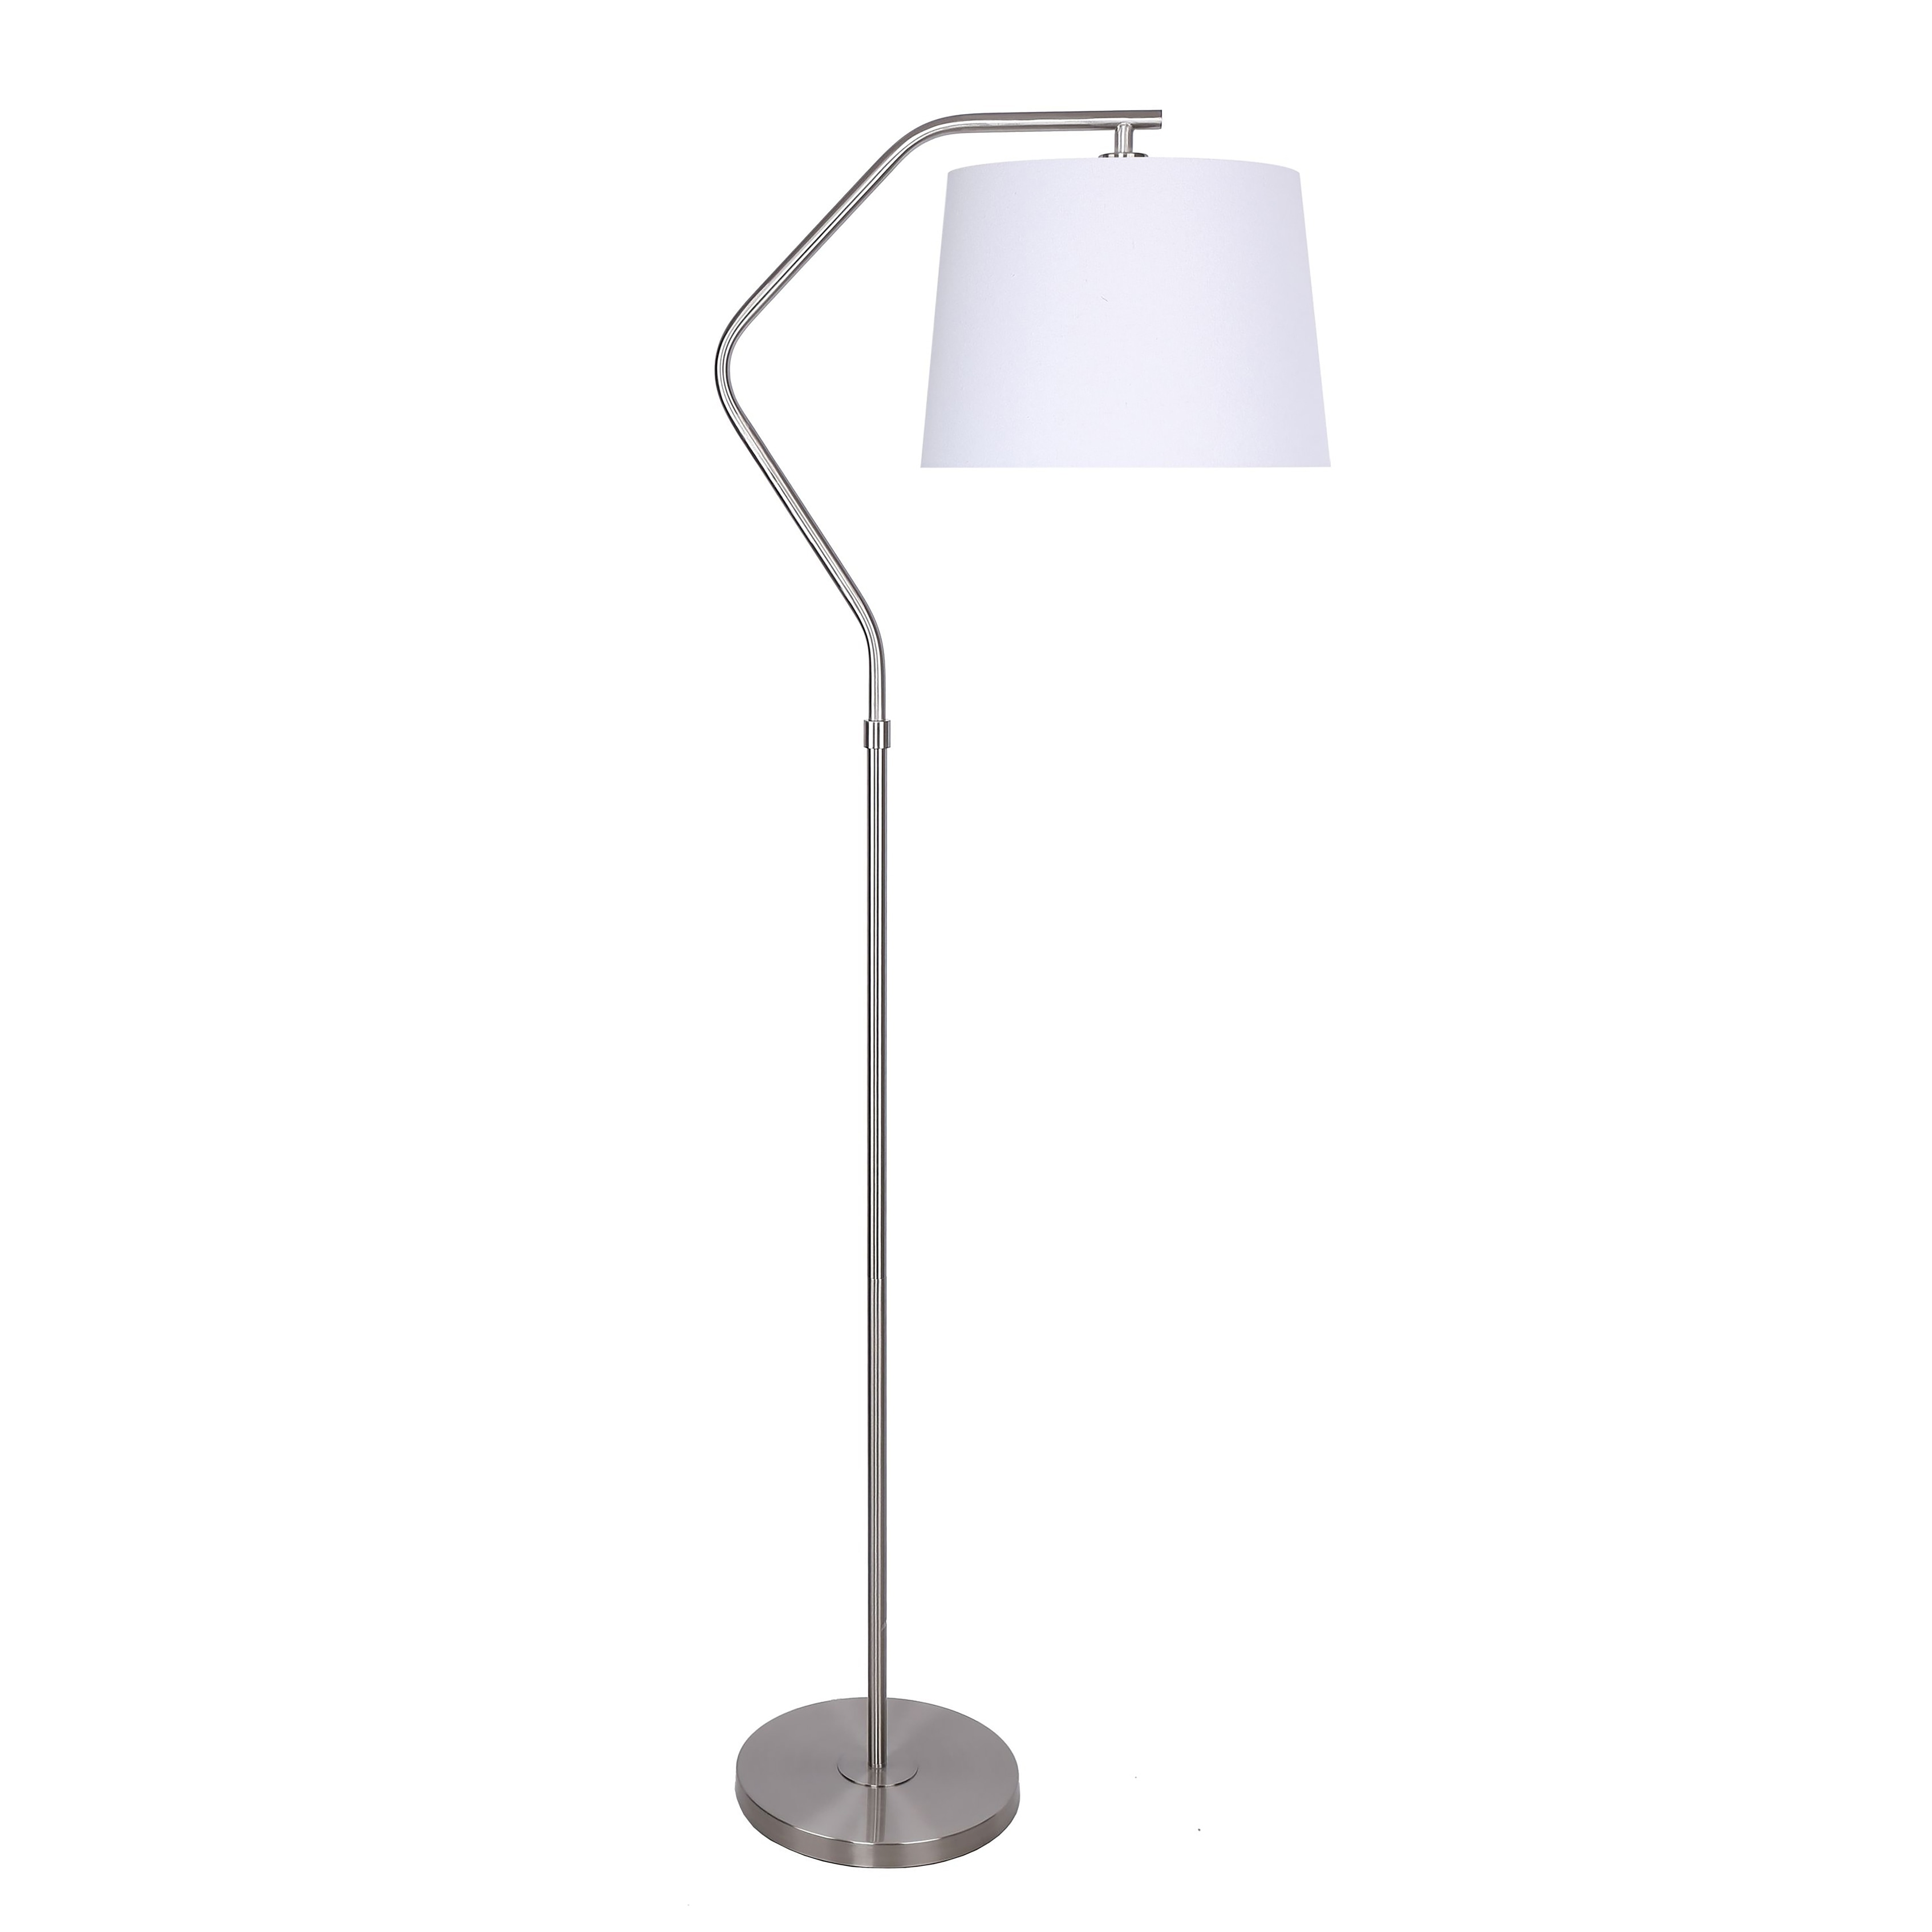 62 5 In Metal Floor Lamp With Angled Base Design And Linen Tapered Drum Shade Overstock 32066648